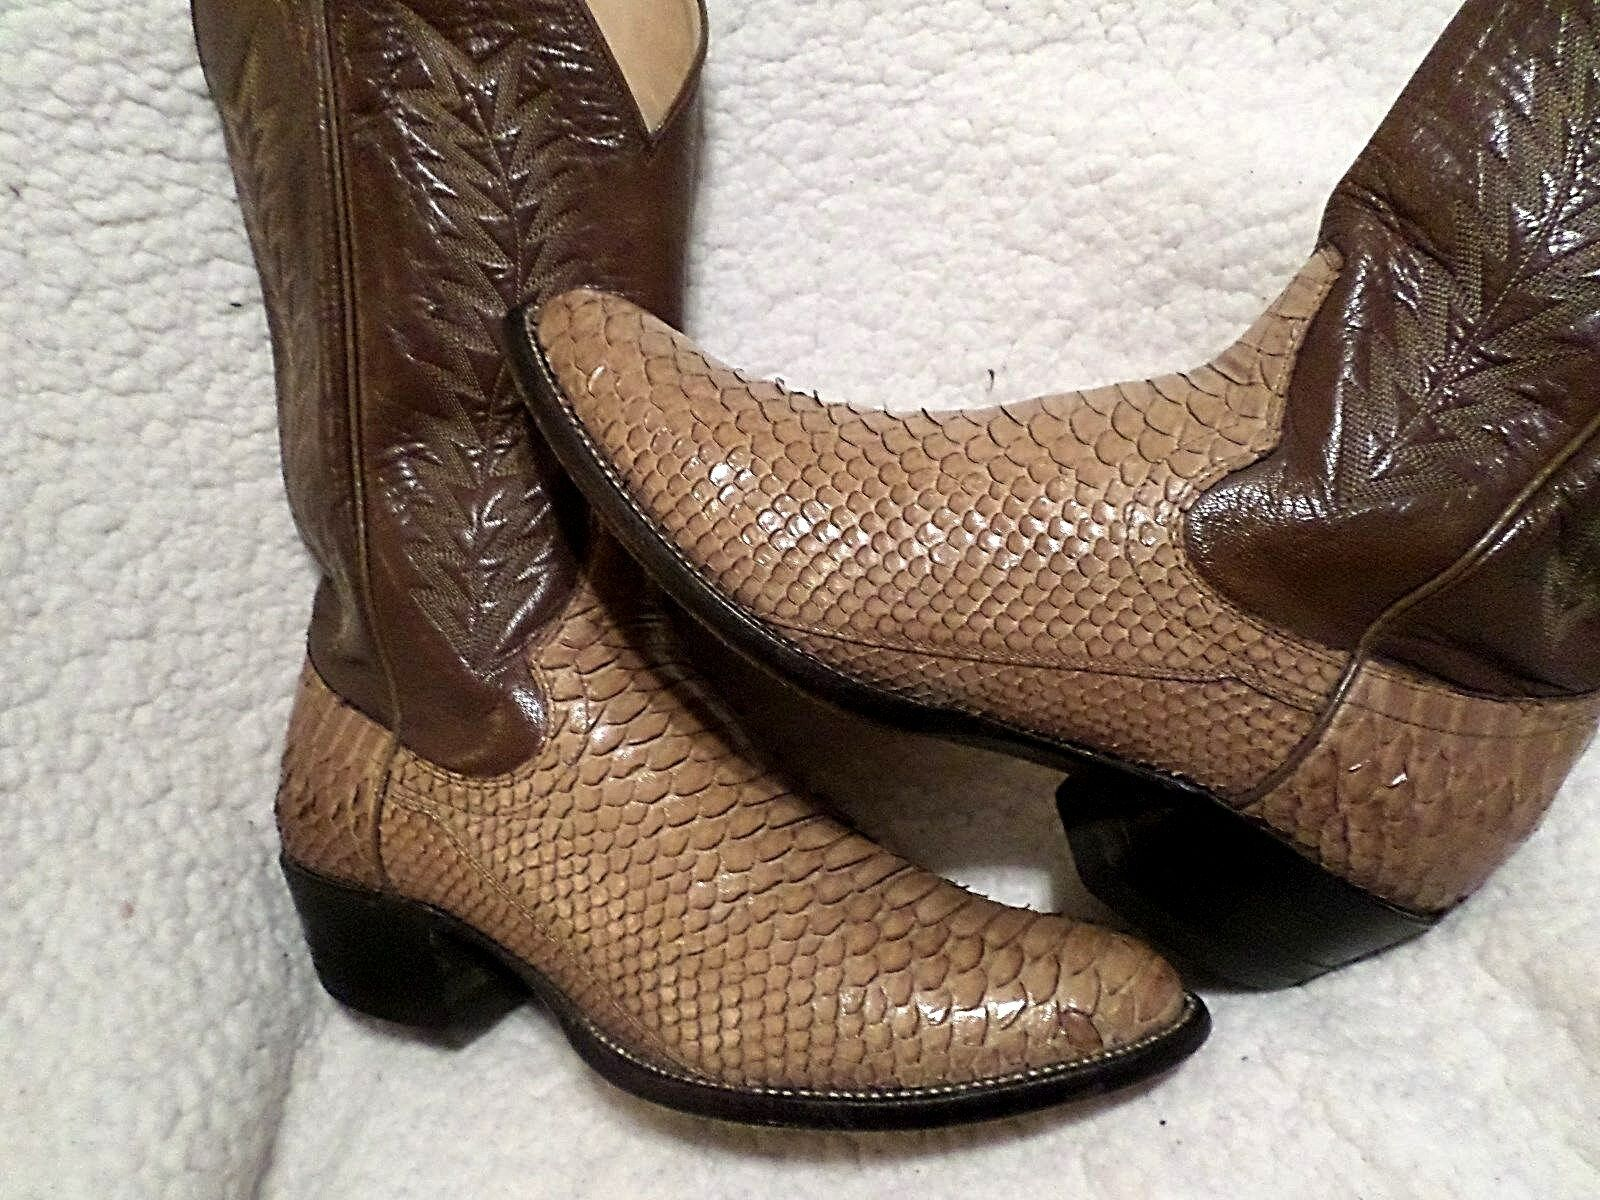 MEN PREOWN TOP QUALITY  SANDERS  PYTHON SNAKE & LEATHER COWBOY BOOTS-TAN-sz 9 D